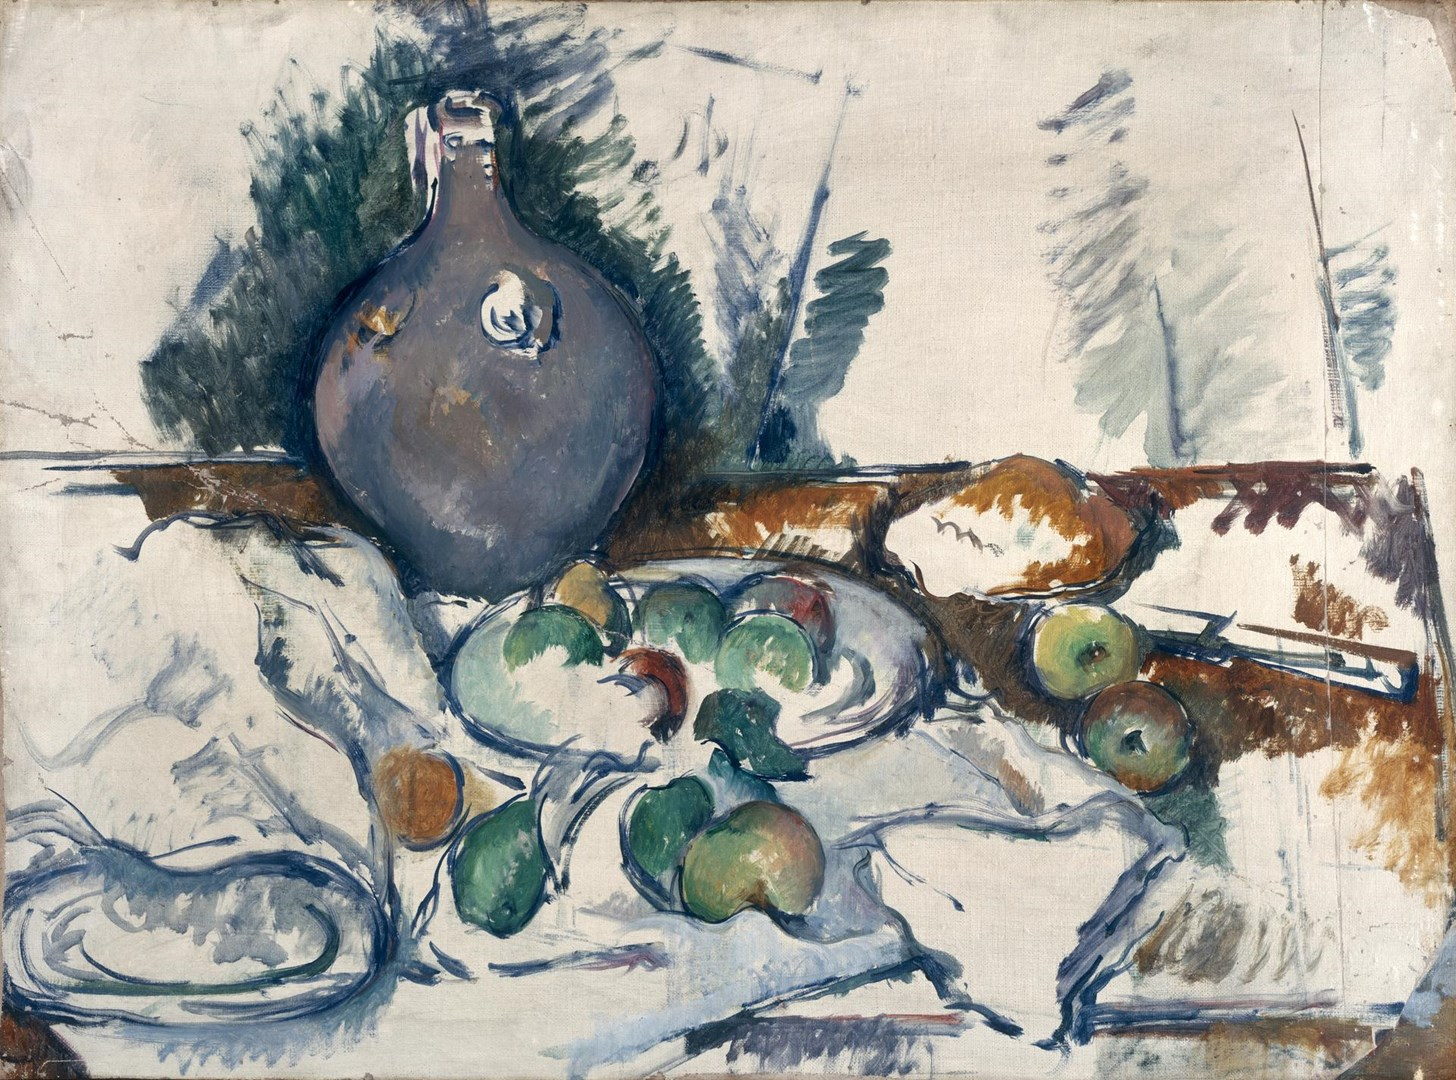 Still Life with Water Jug by Paul Cézanne